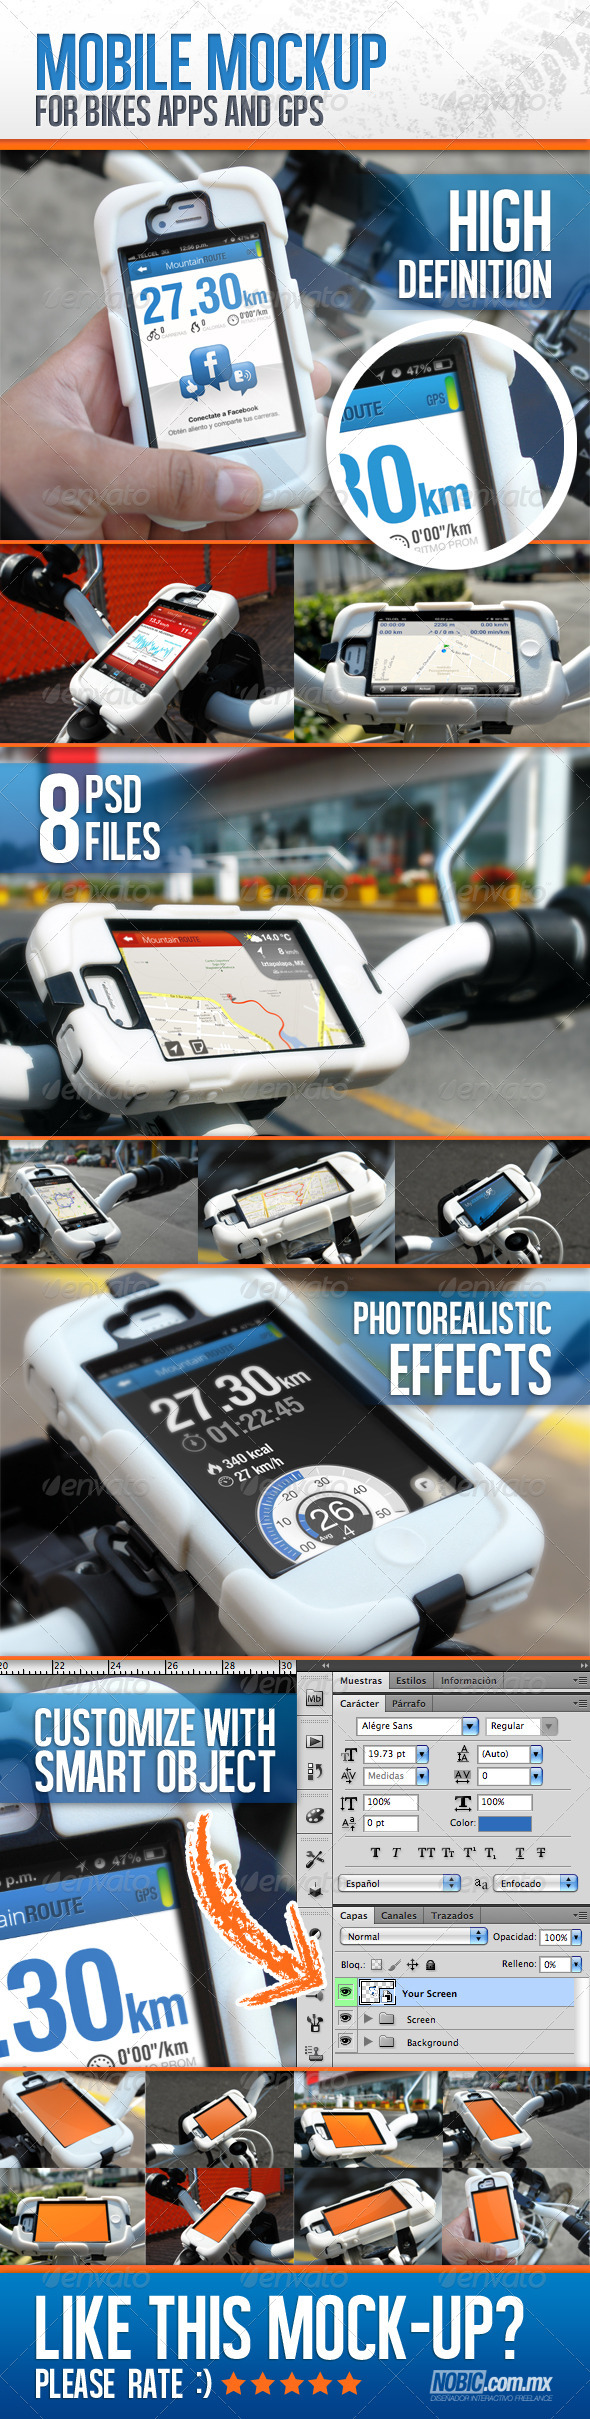 Bike Mockup for Apps and GPS Devices - Mobile Displays